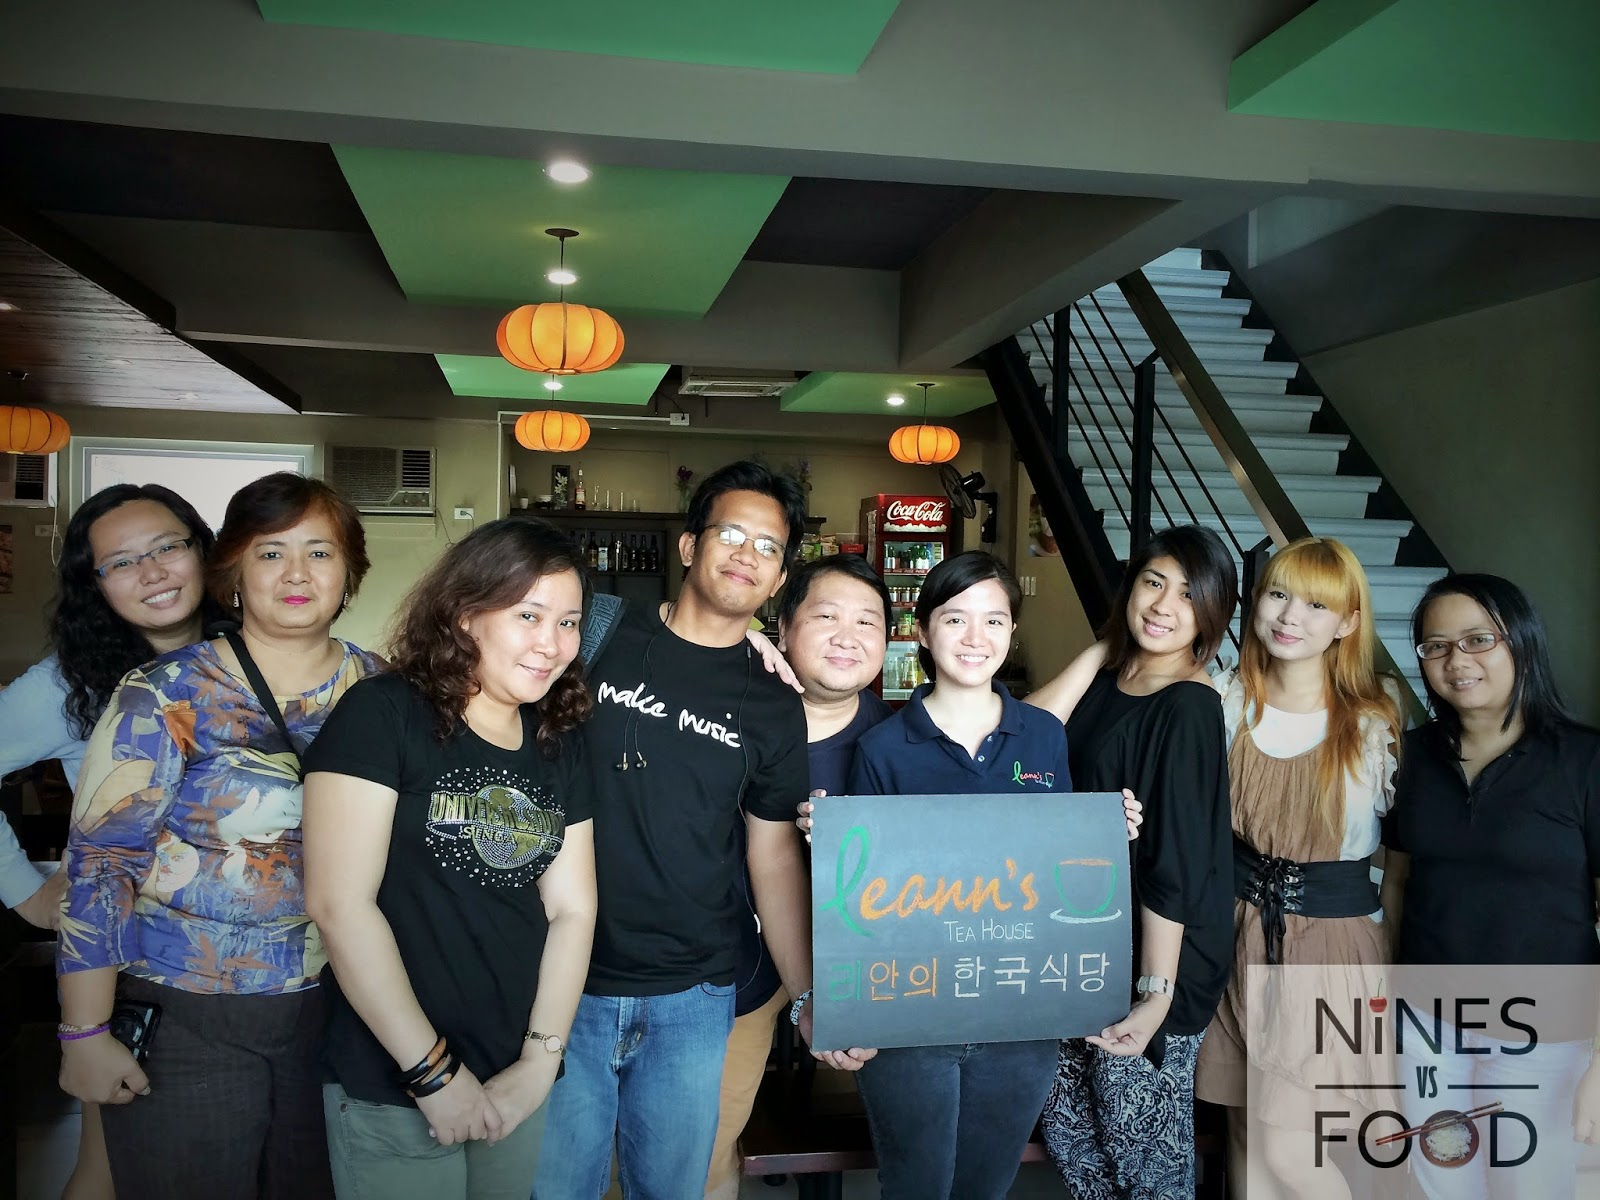 Nines vs. Food - Leann's Tea House Quezon City-36.jpg